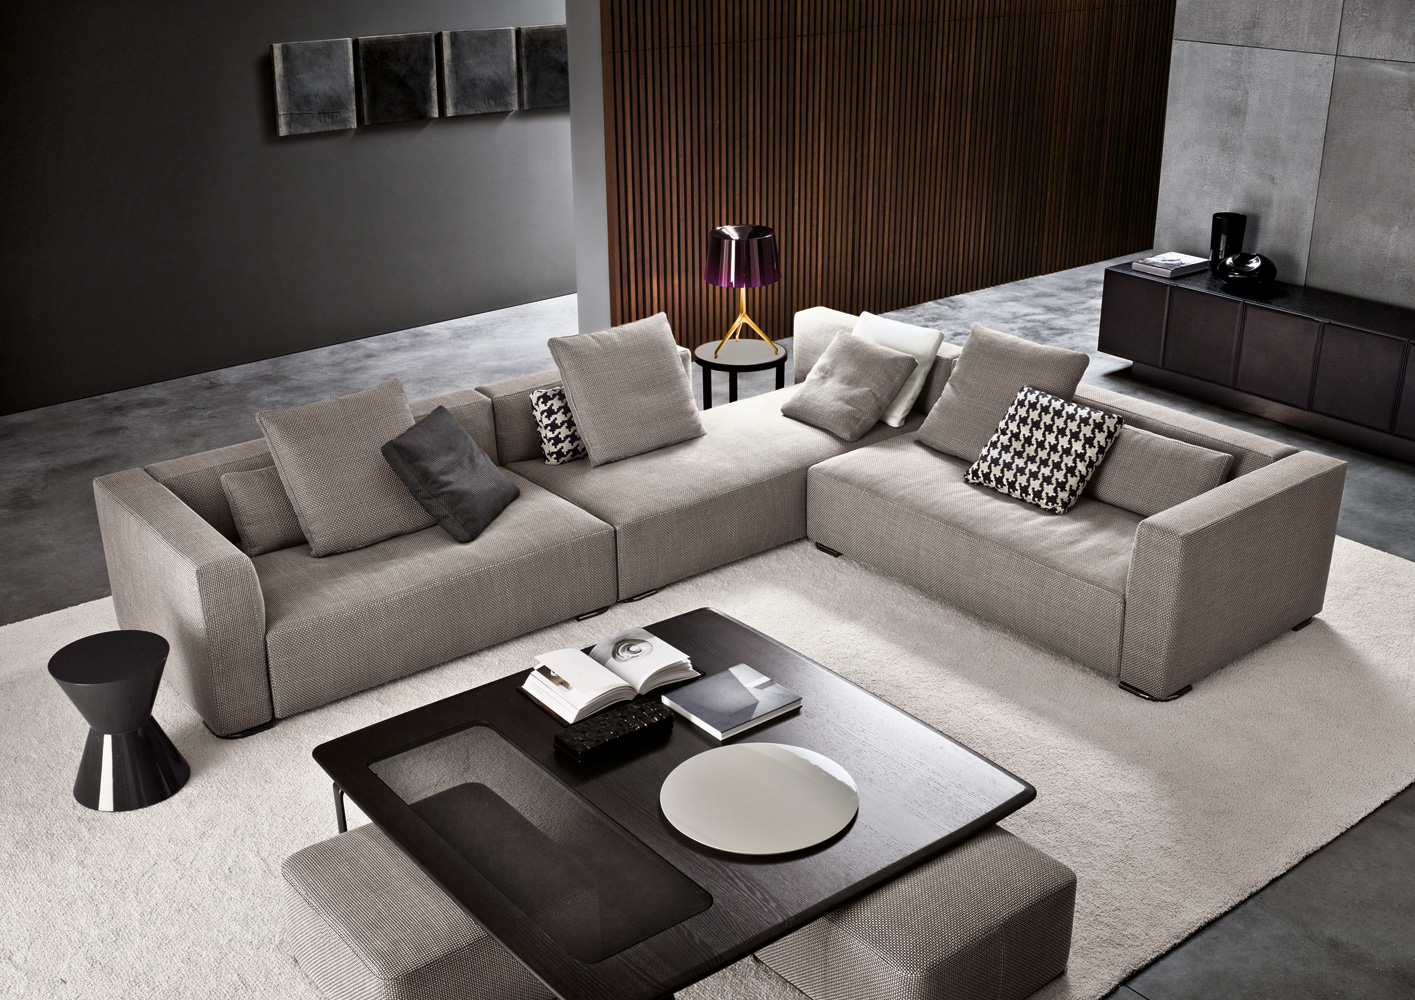 High definition minotti luxury sofas now in lebanon Modern luxury sofa